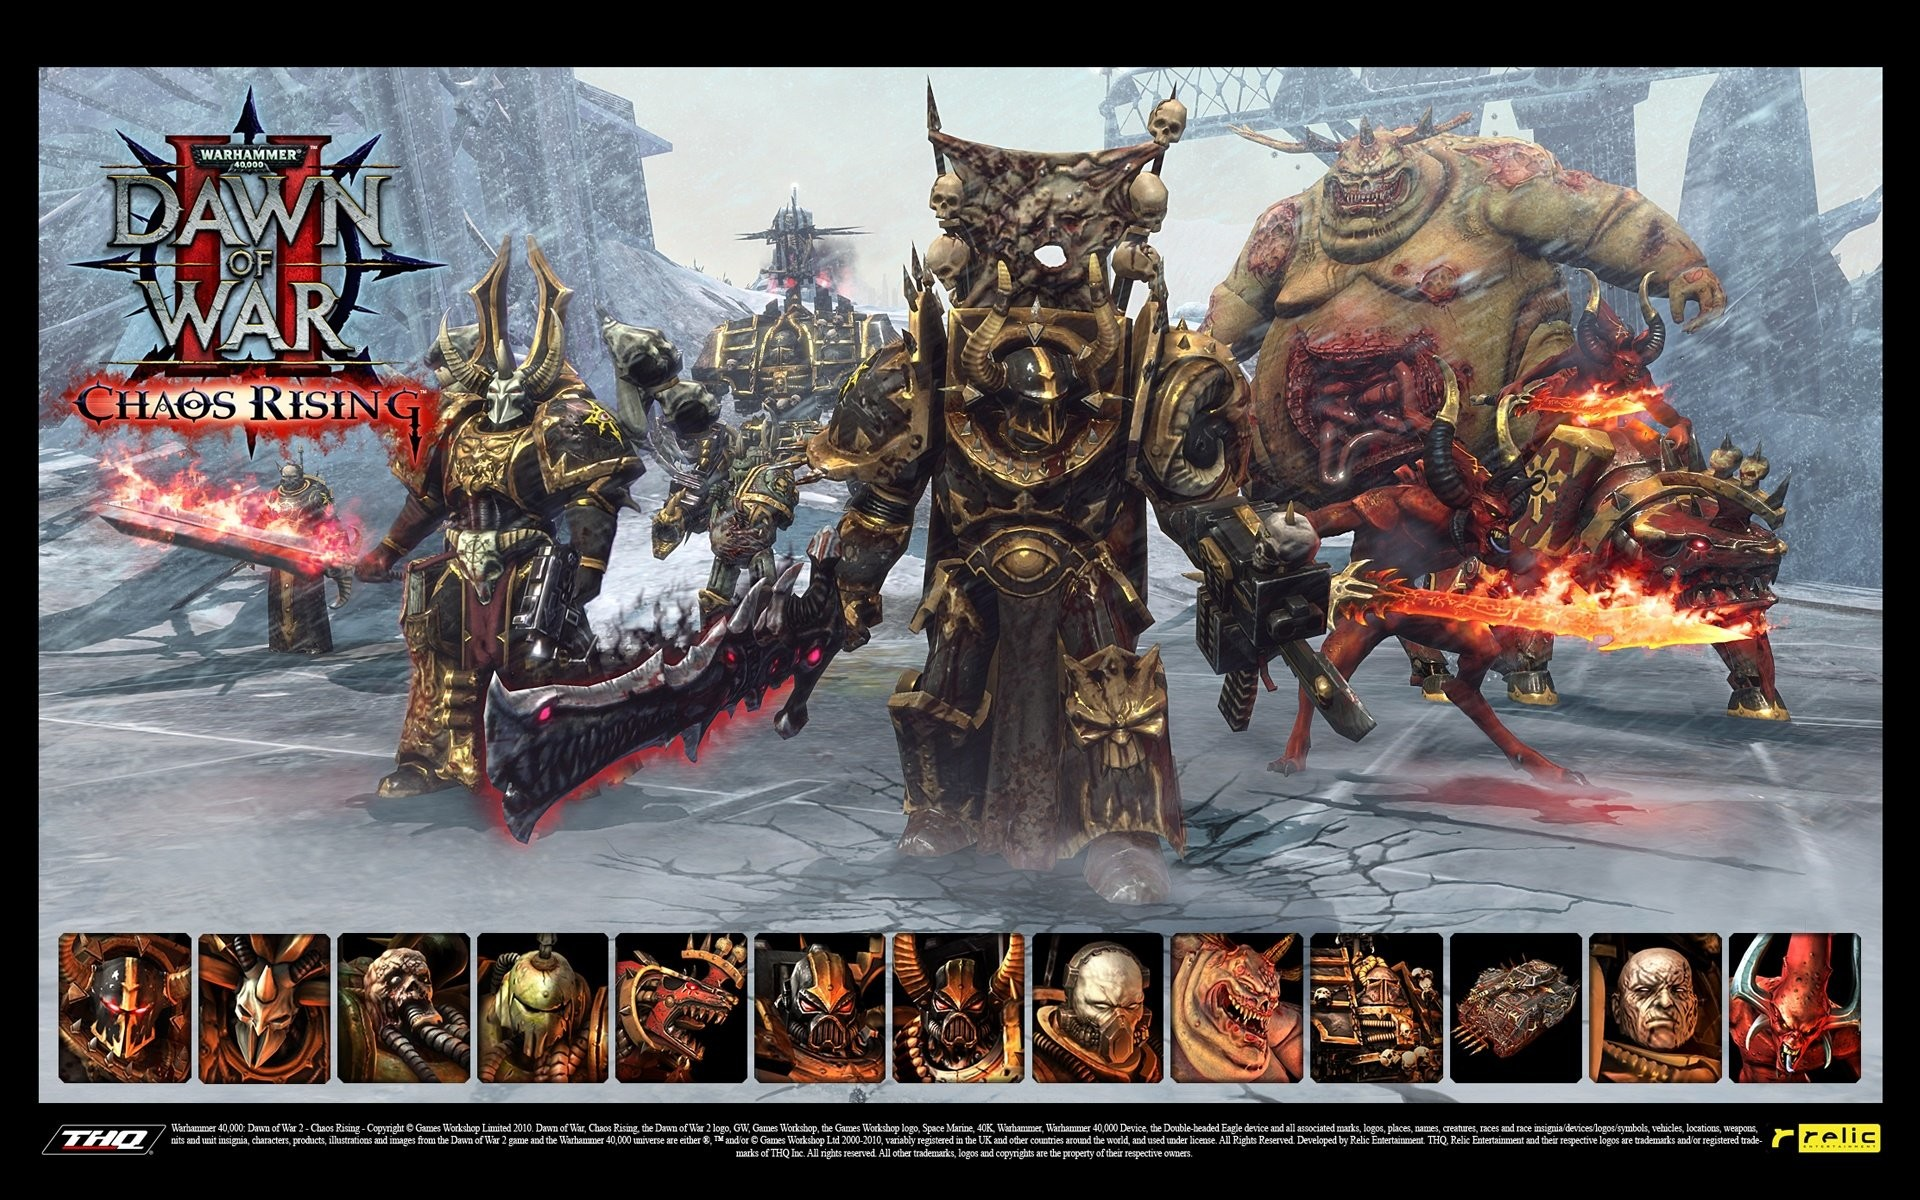 1920x1200 Wallpaper zu Warhammer 40.000: Dawn of War 2 - Chaos Rising herunterladen